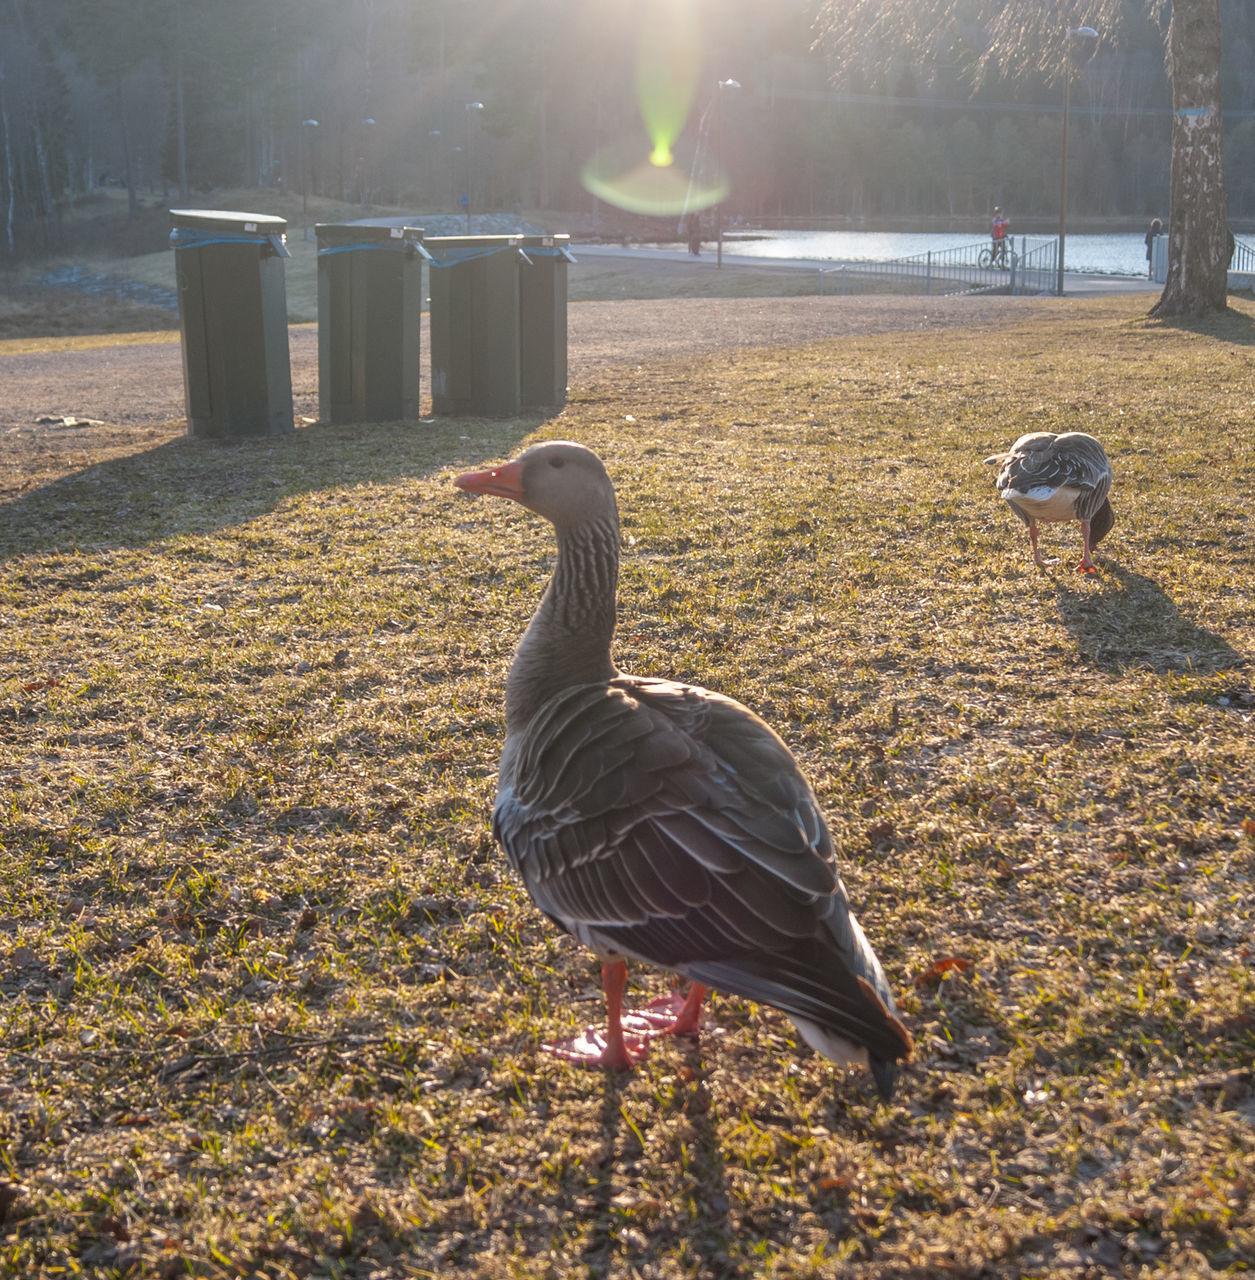 animal themes, bird, animals in the wild, goose, animal wildlife, nature, field, no people, greylag goose, day, geese, one animal, outdoors, water bird, lake, water, beauty in nature